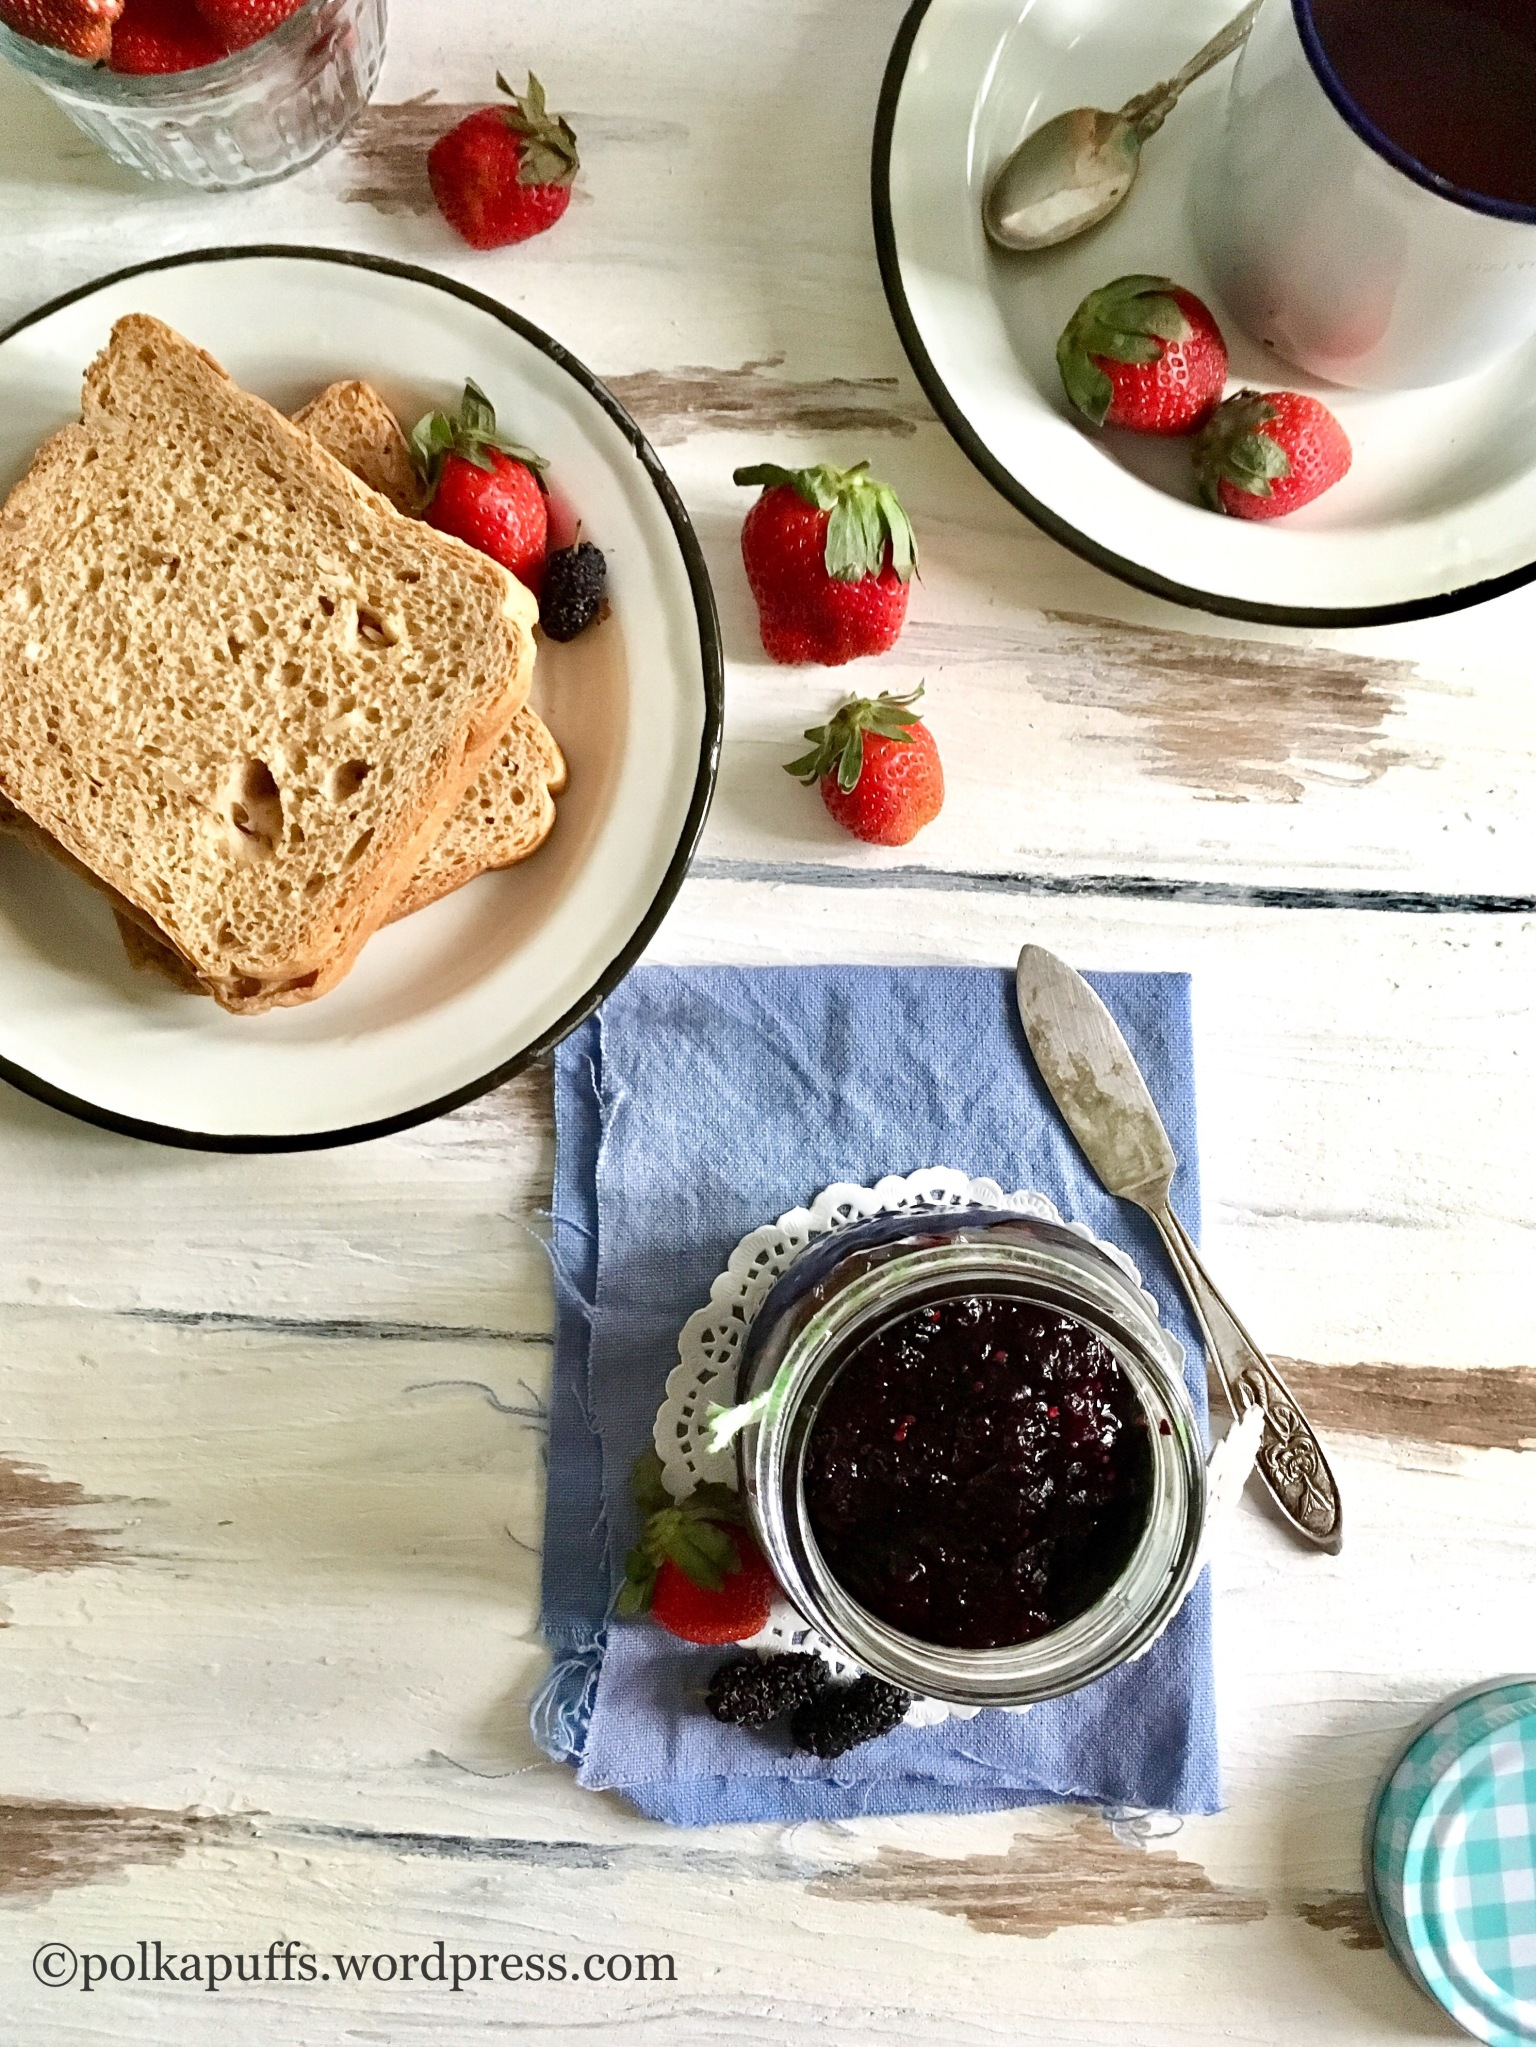 3 ingredient strawberry jam  3 Ingredient mixed berries jam Homemade strawberry jam recipe Polkapuffs recipe No pectin strawberry jam recipe No pectin jam recipe  Mulberry jam recipe  How to make jam at home without pectin